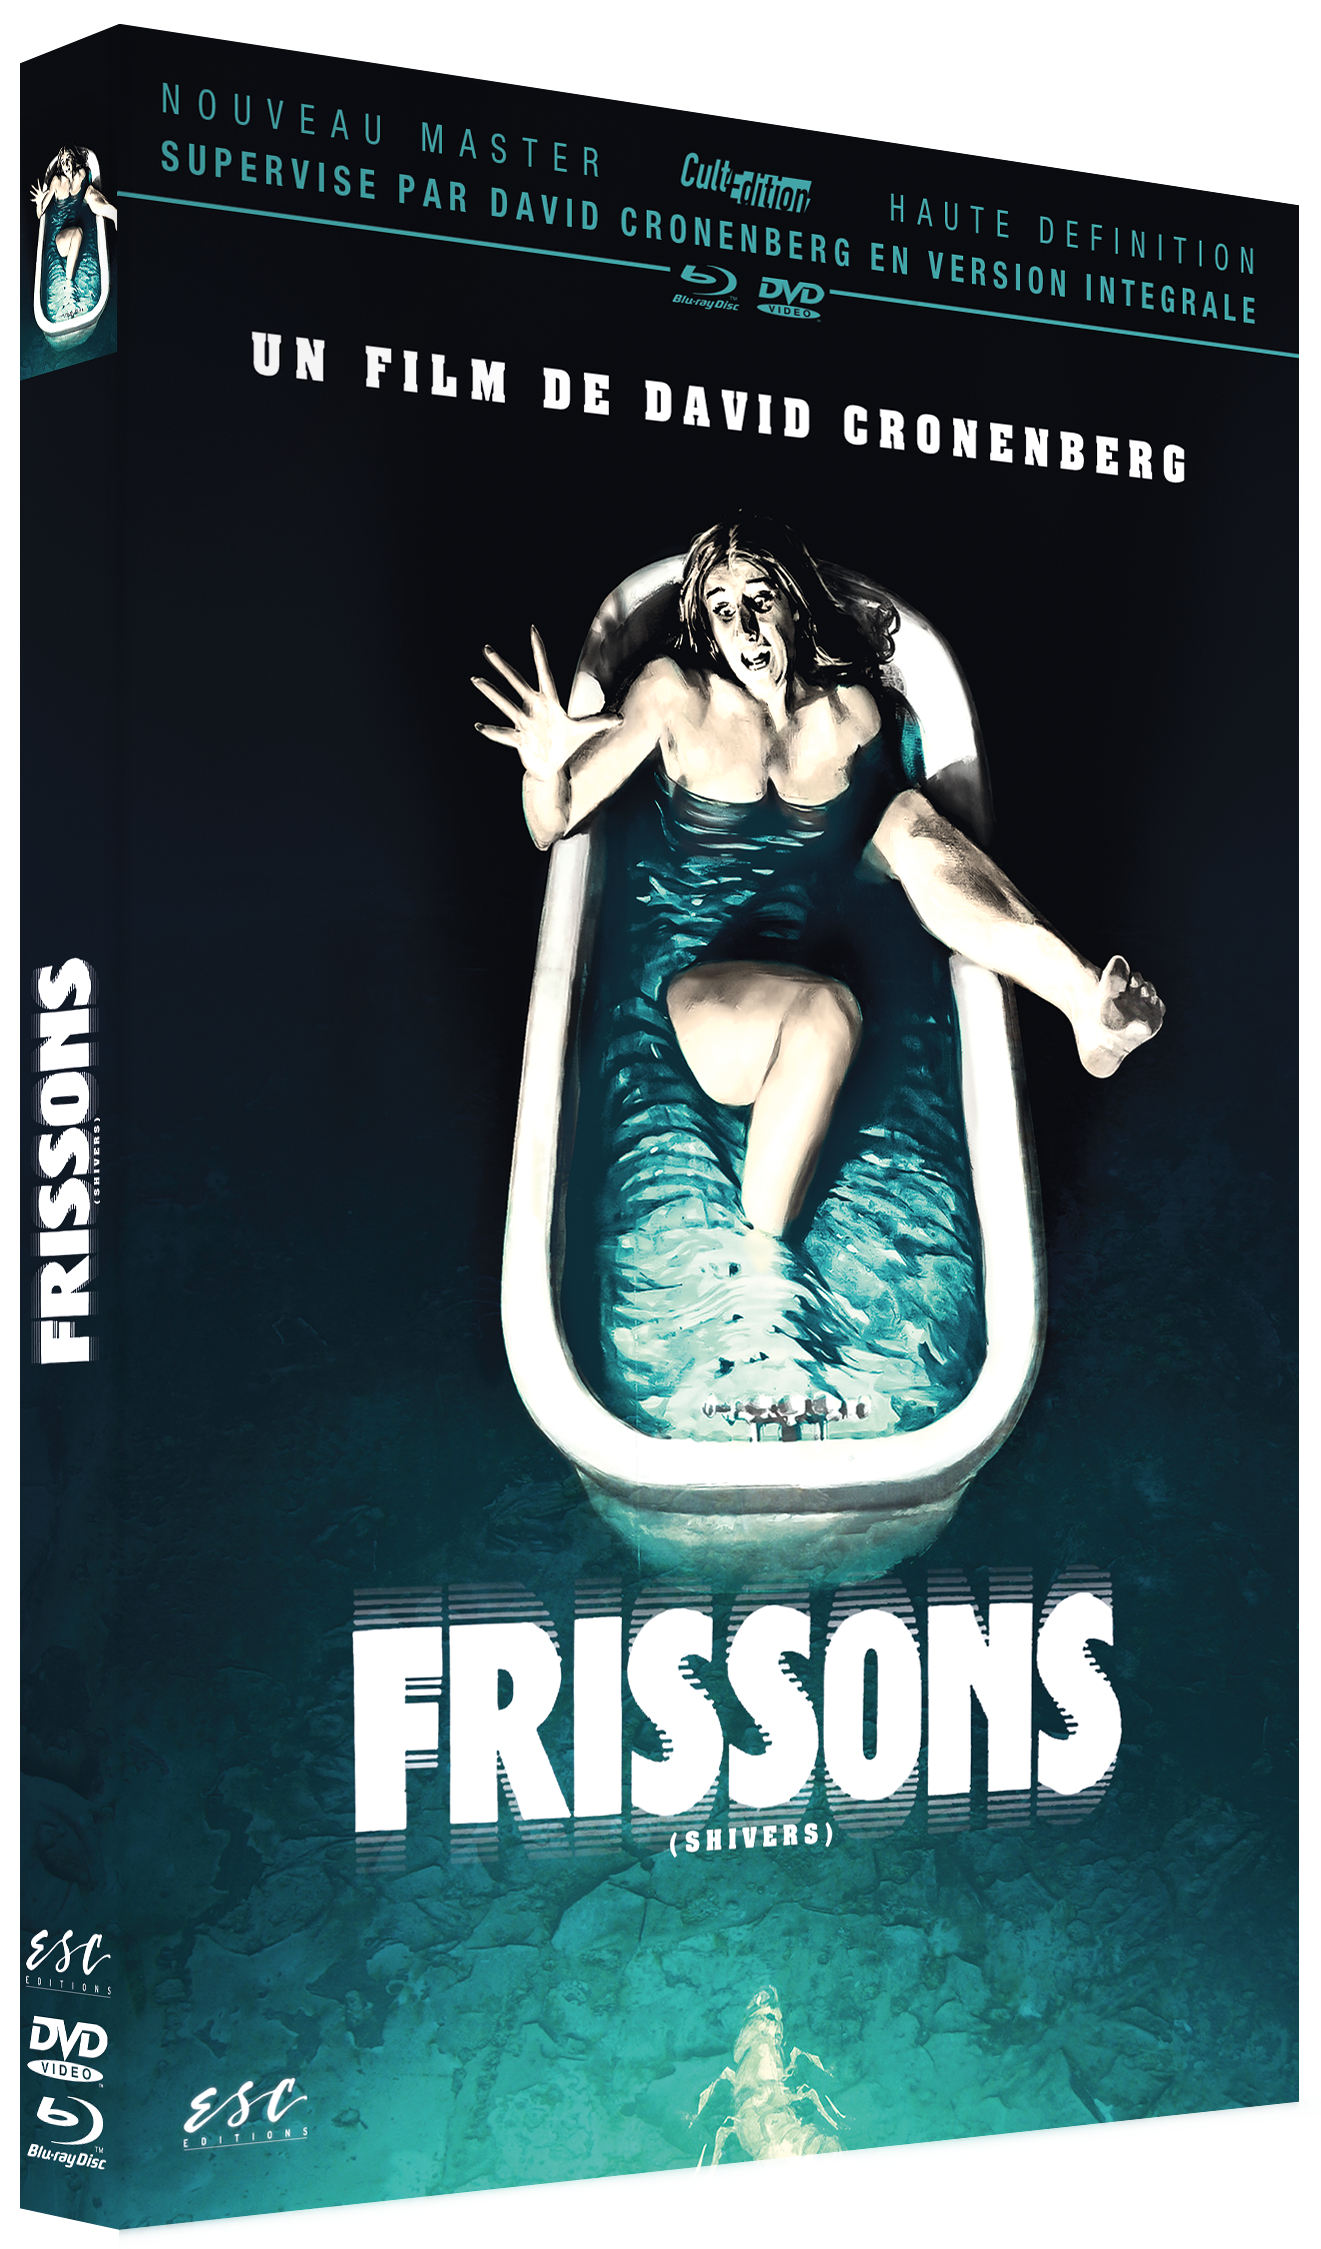 FRISSONS (SHIVERS)-